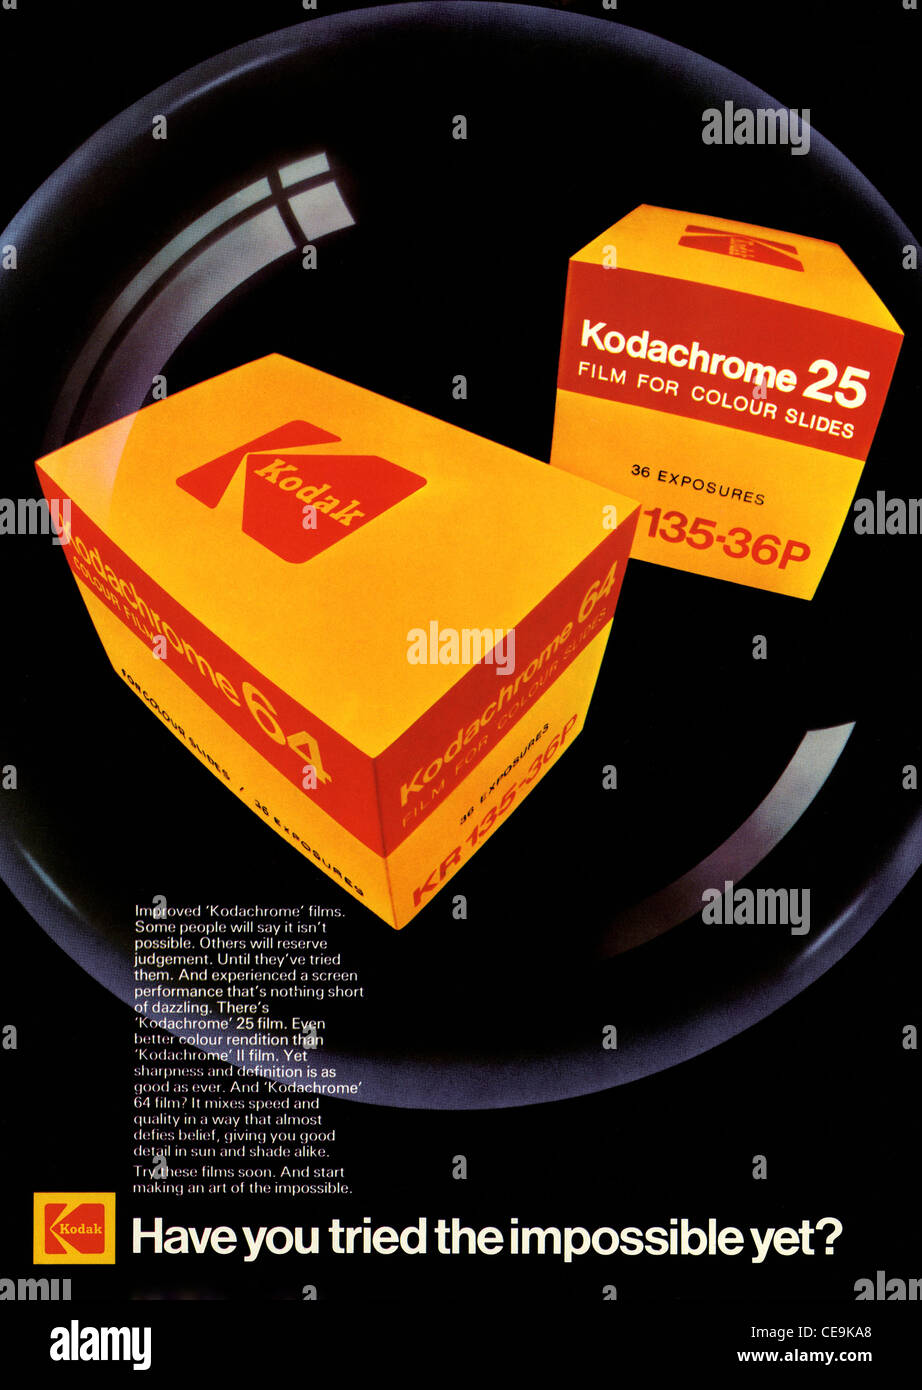 70's Poster and magazine page ad launching Kodachrome 25 and